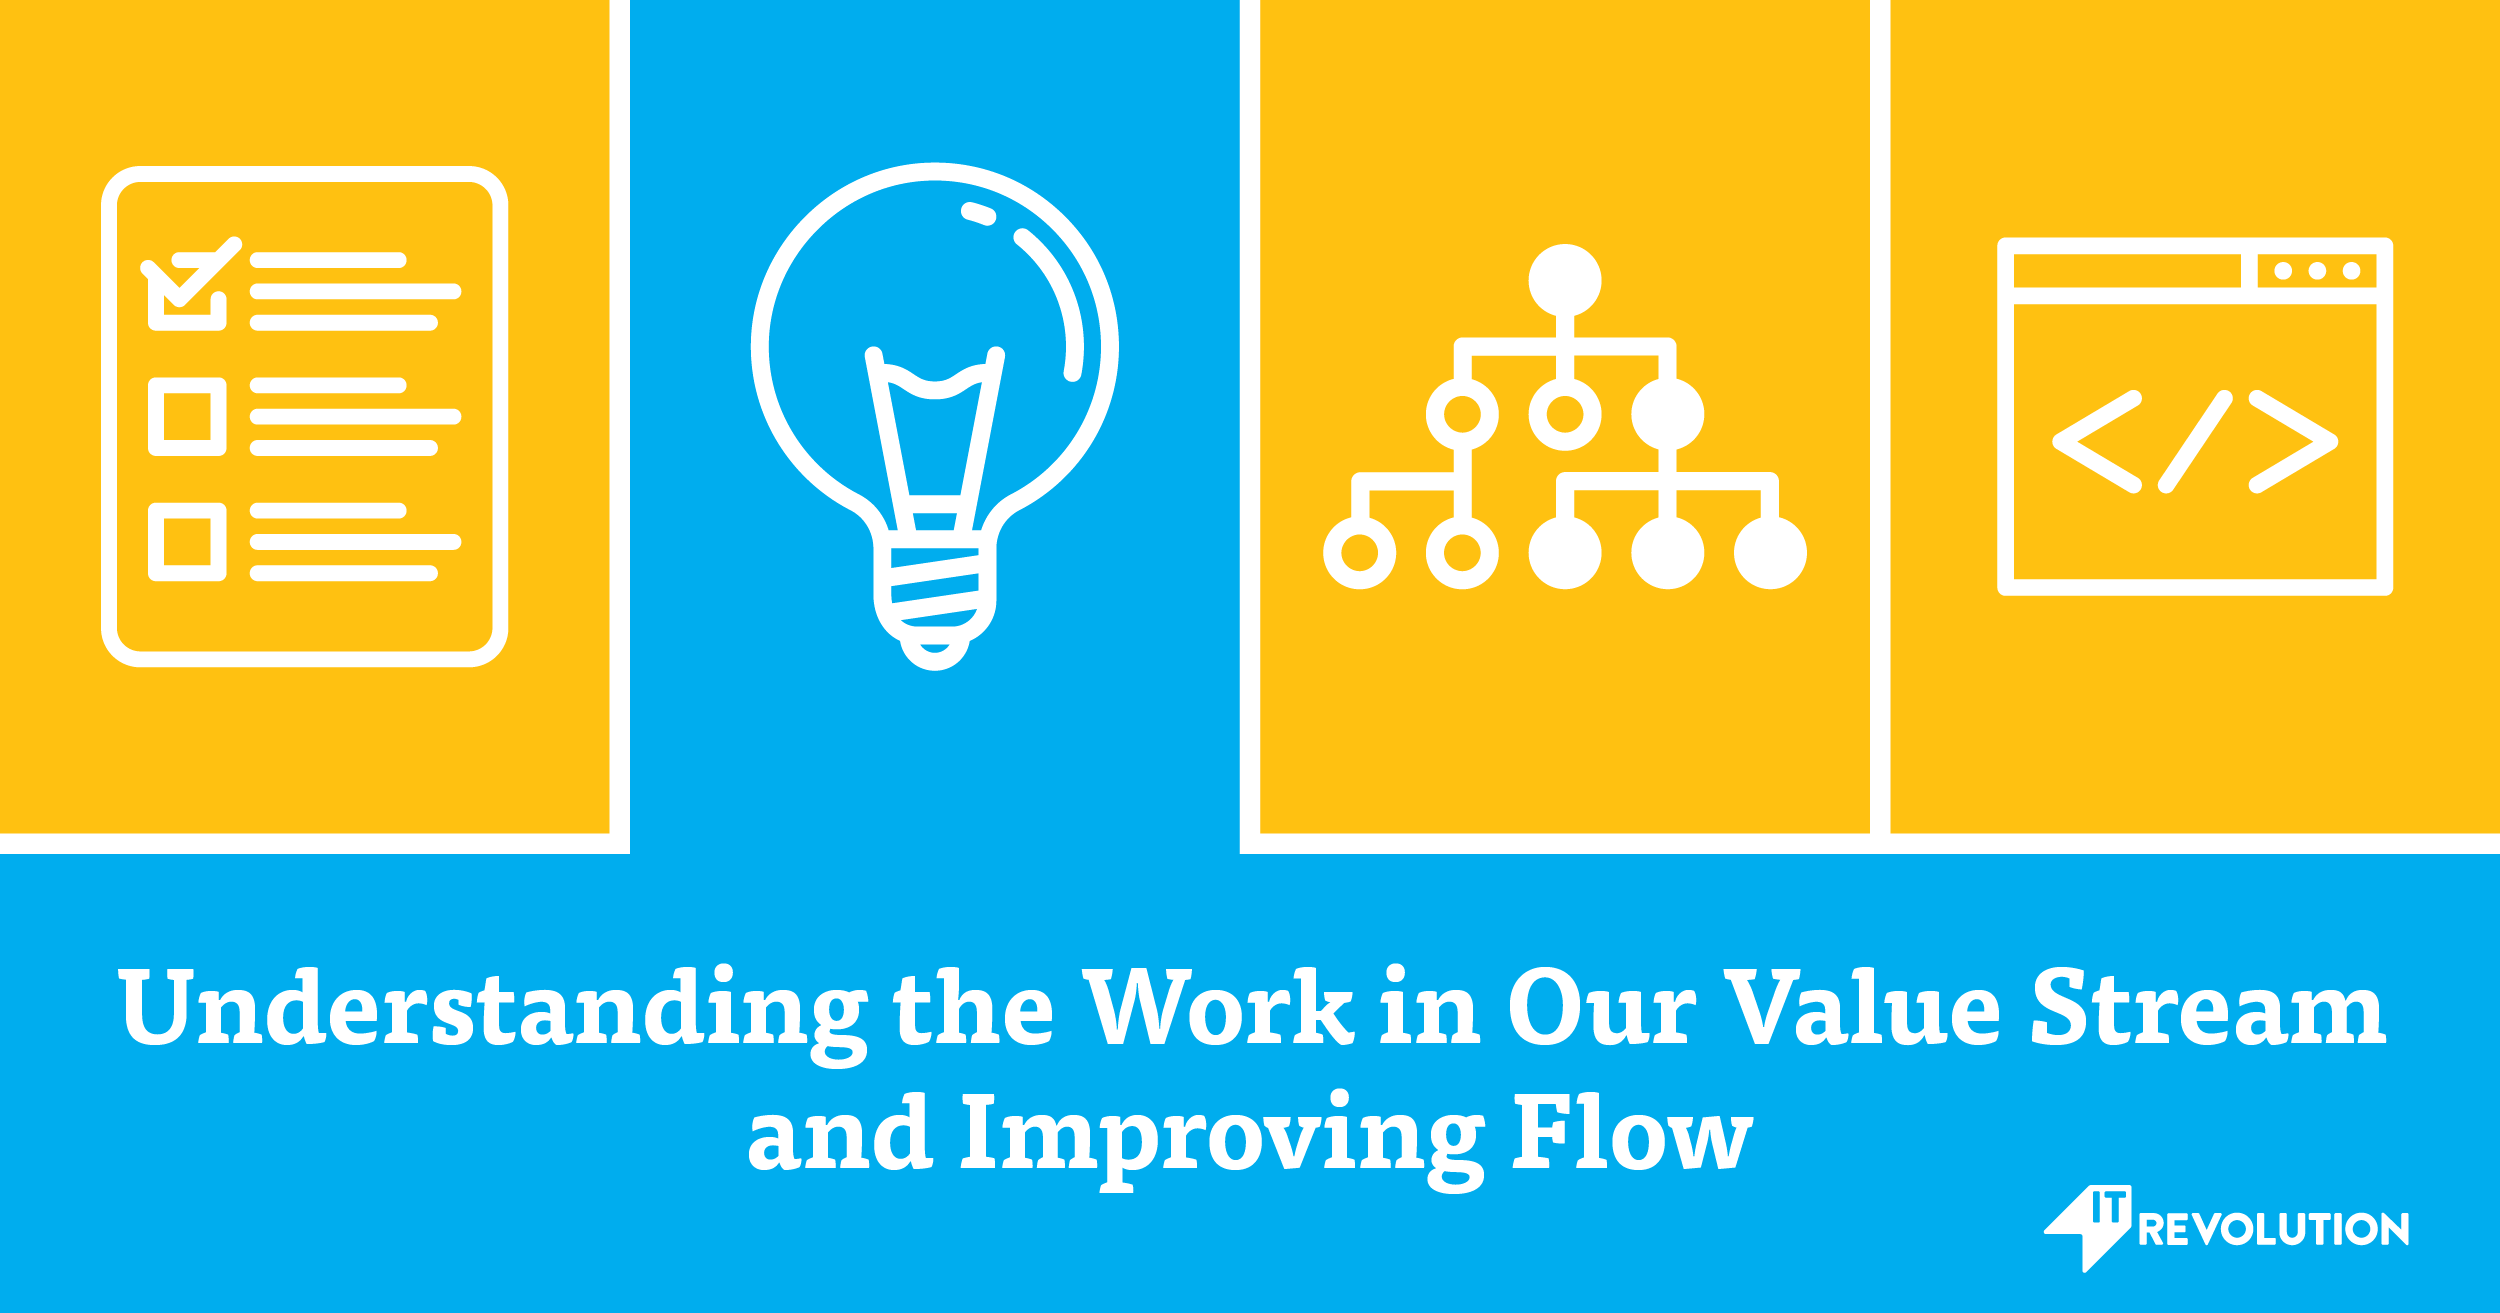 Understanding the work in our value stream and improving flow